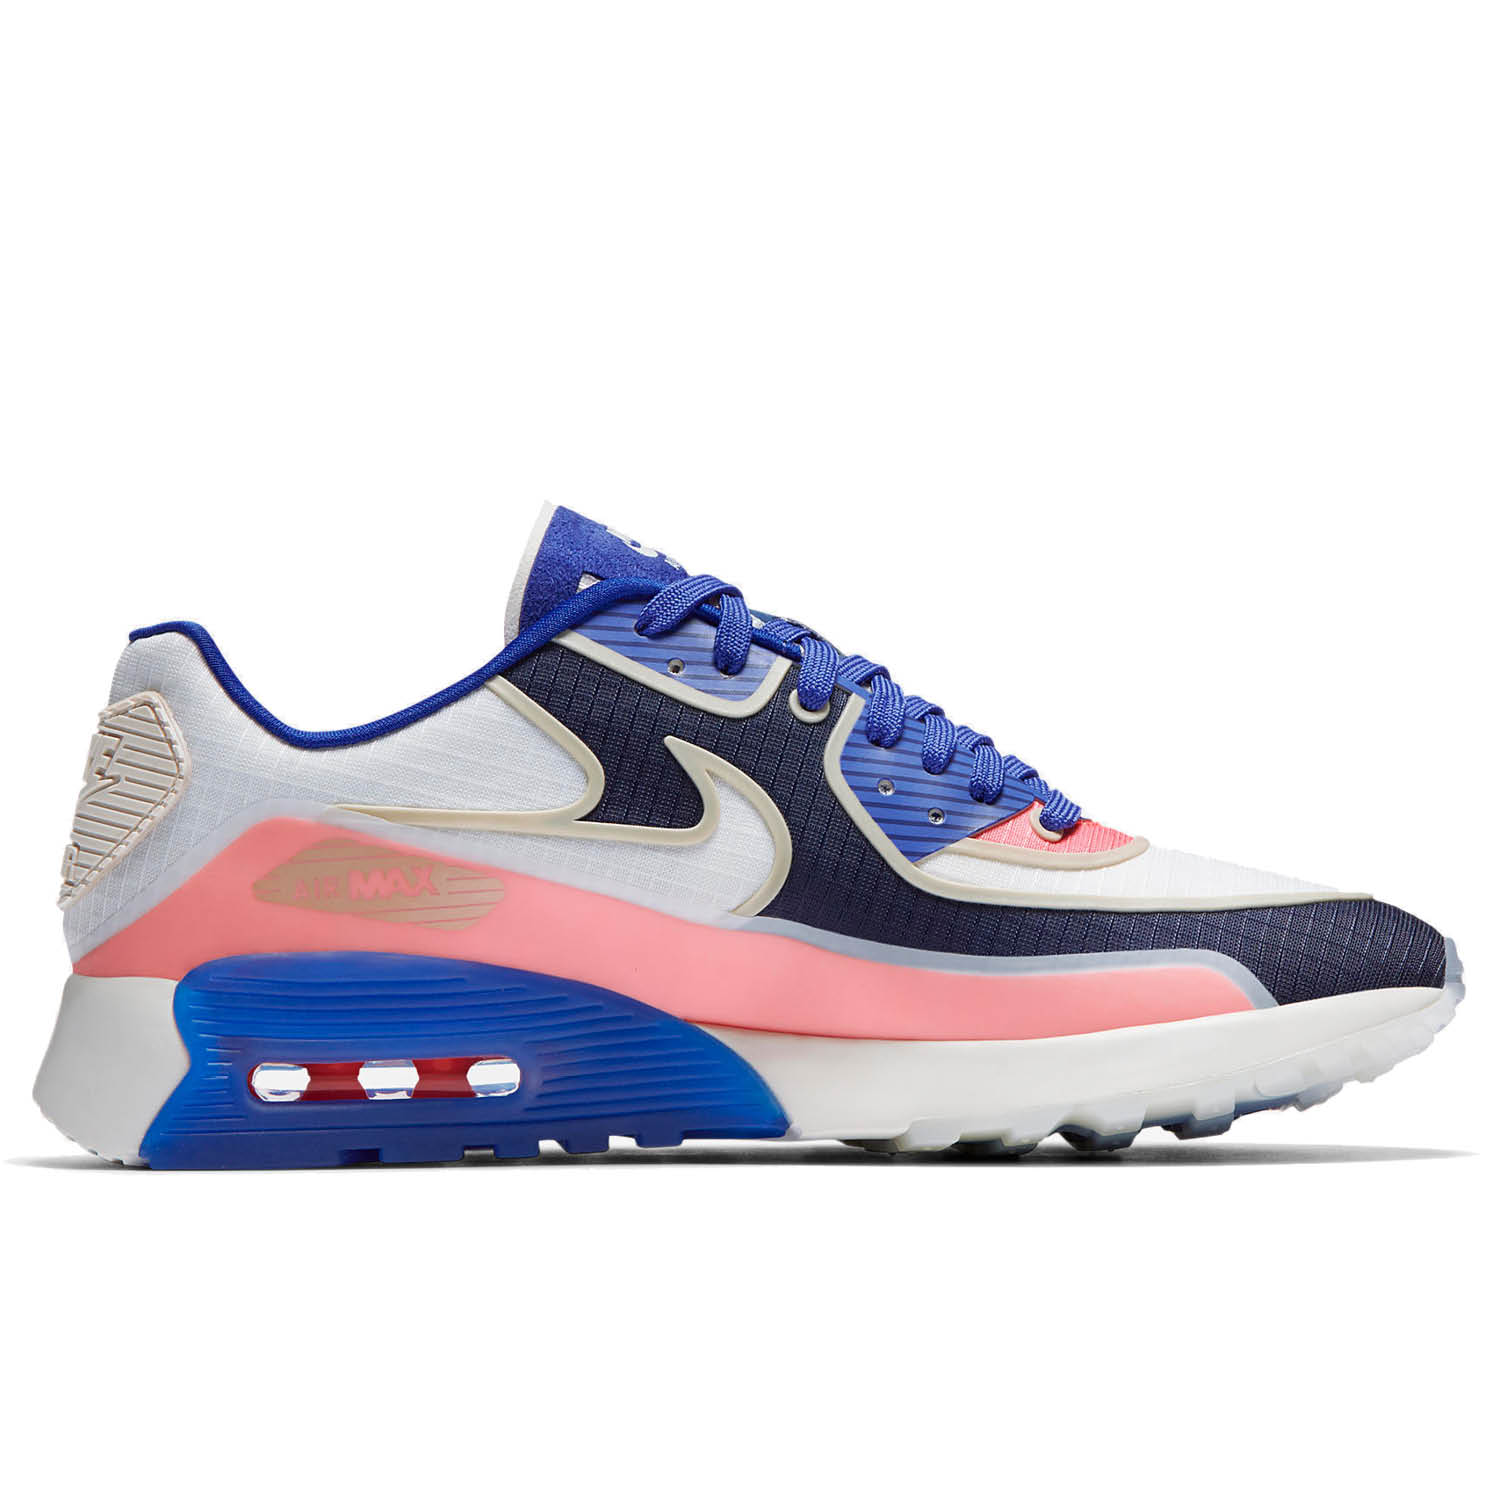 lowest price 4f565 29dae nike fingertrap weight best running shoe for pronator